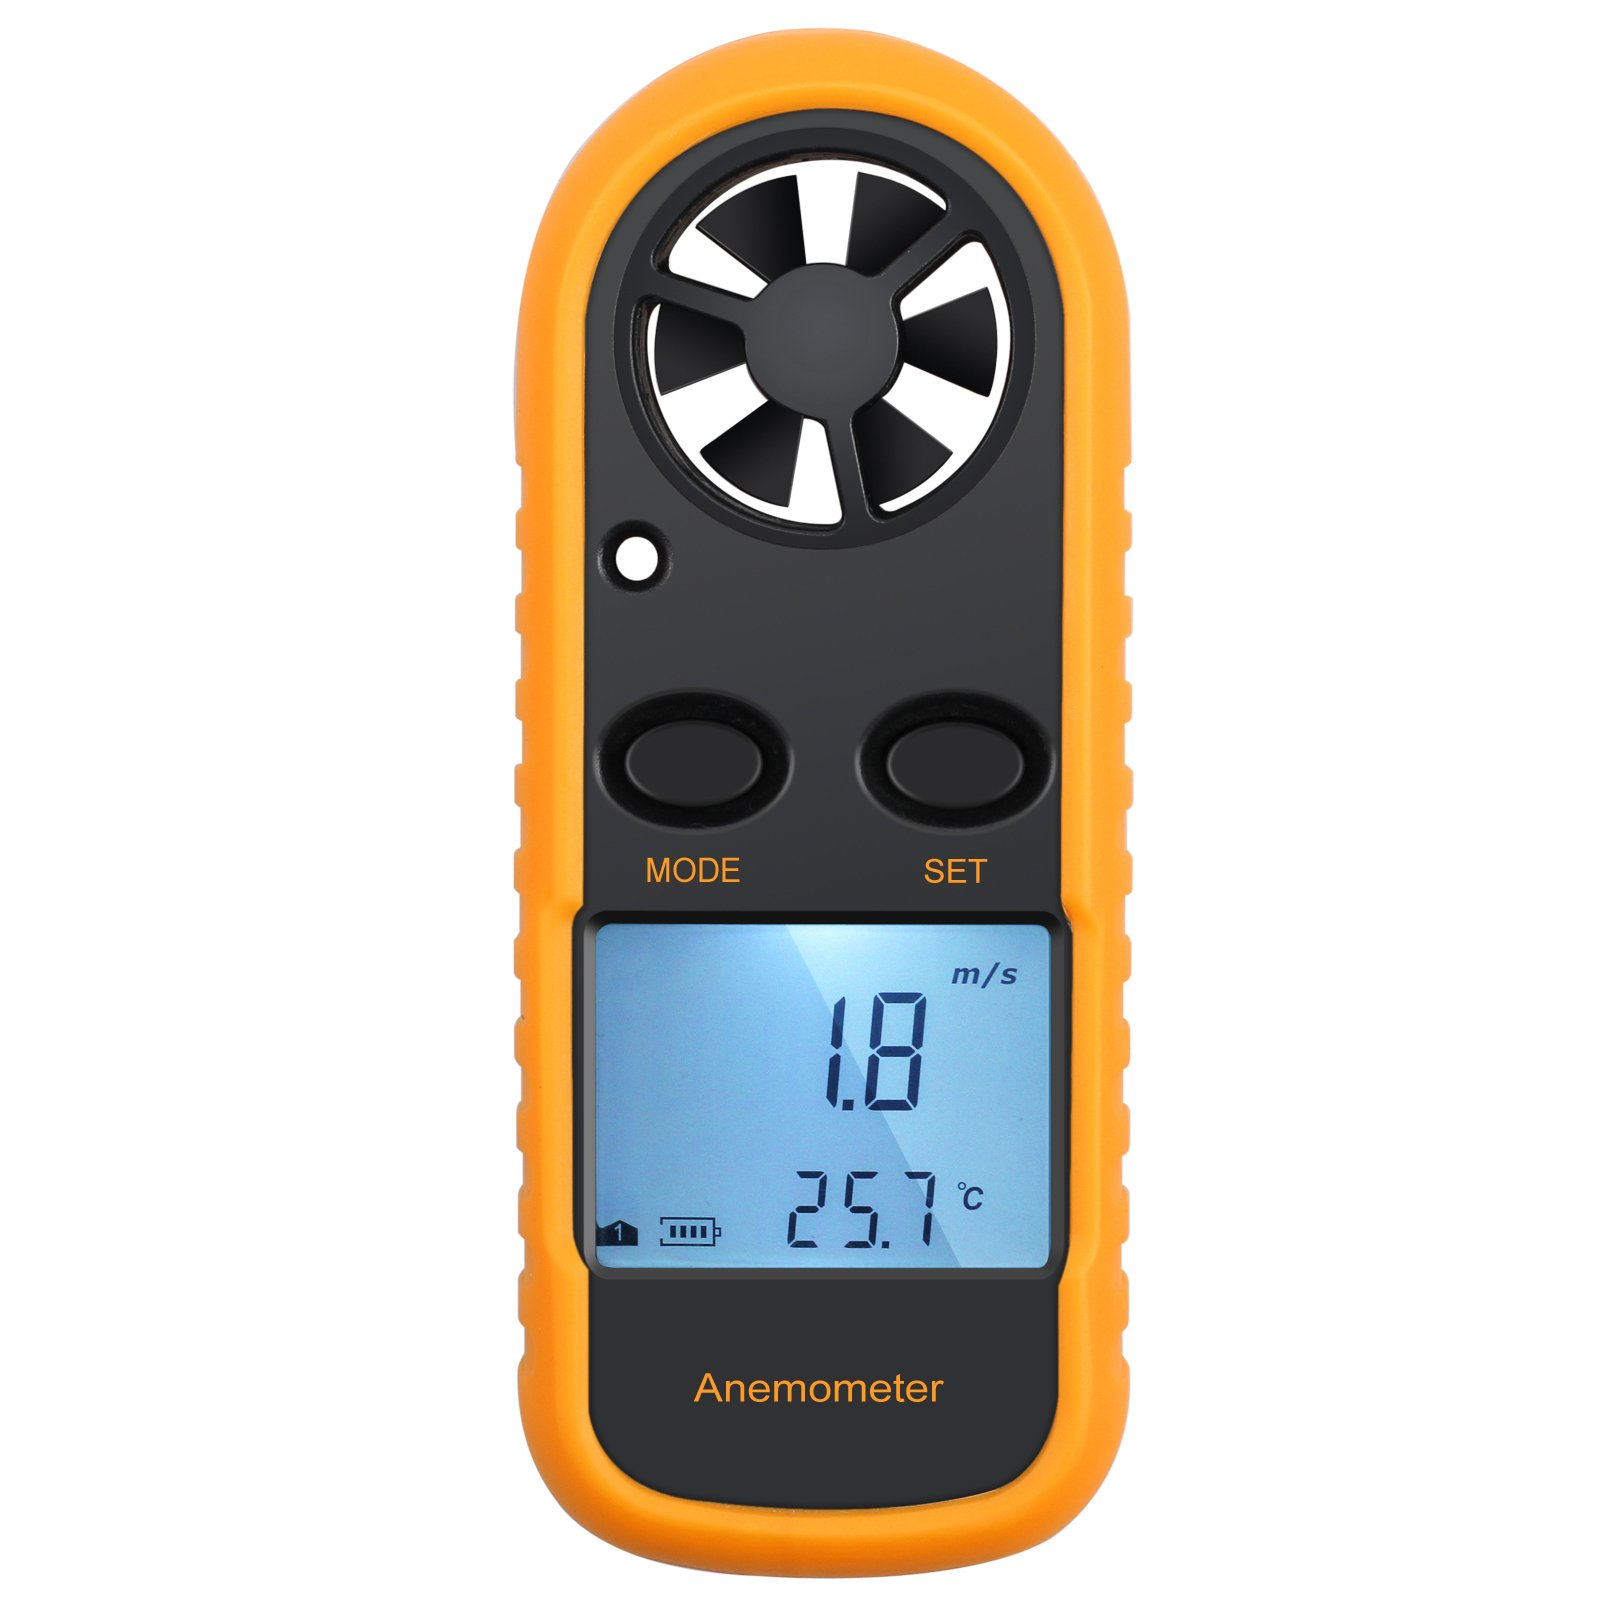 ESYNIC Digital Wind Speed meter Gauge Handheld Anemometer thermomoter CE APPROVED with Backlight for Sailing Surfing